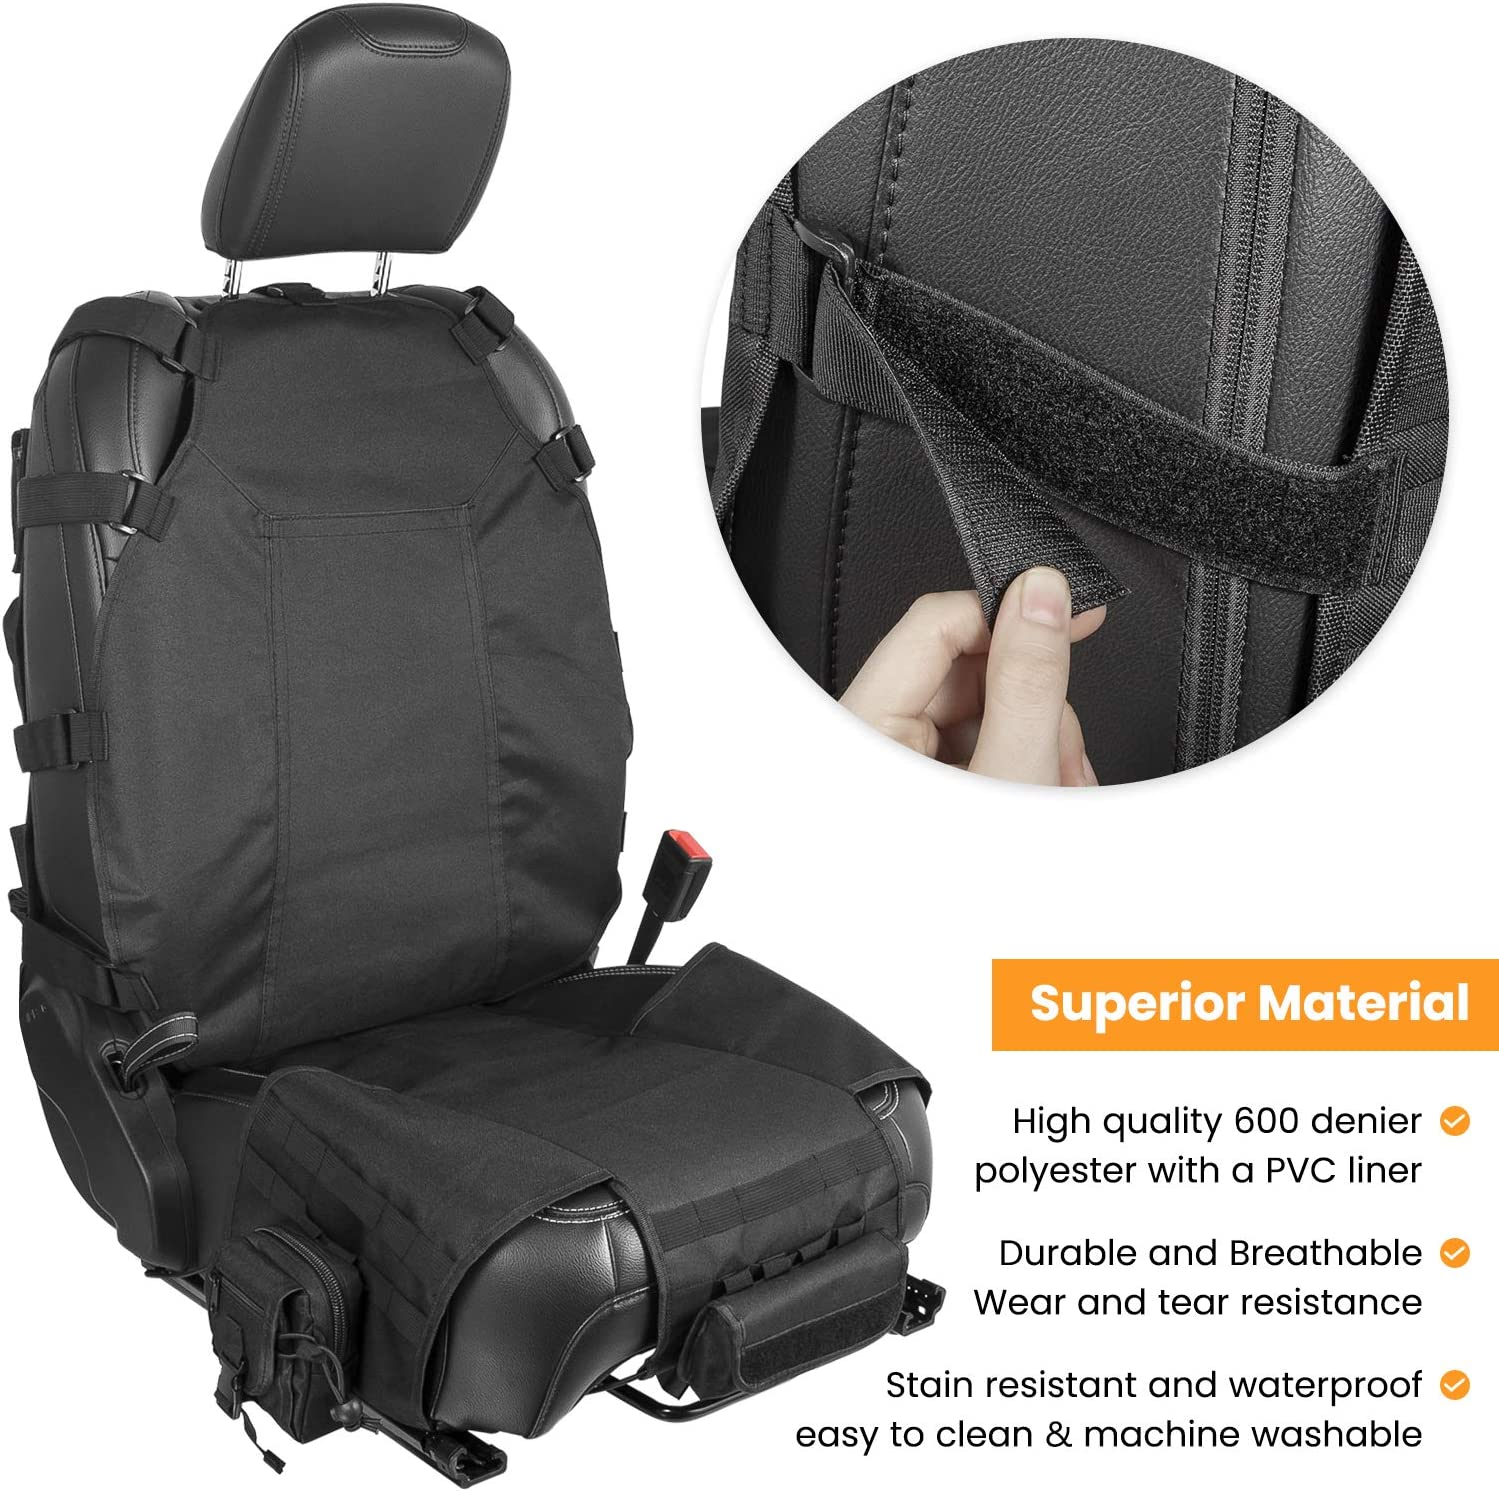 E-cowlboy Universal Seat Cover Case with Organizer Storage Muti Pocket fit Jeep Wrangler JK JL Unlimited CJ YJ Cherokee Rubicon Ford F150 Ridgeline Toyota Chevy Seat Protector Multiple Pockets